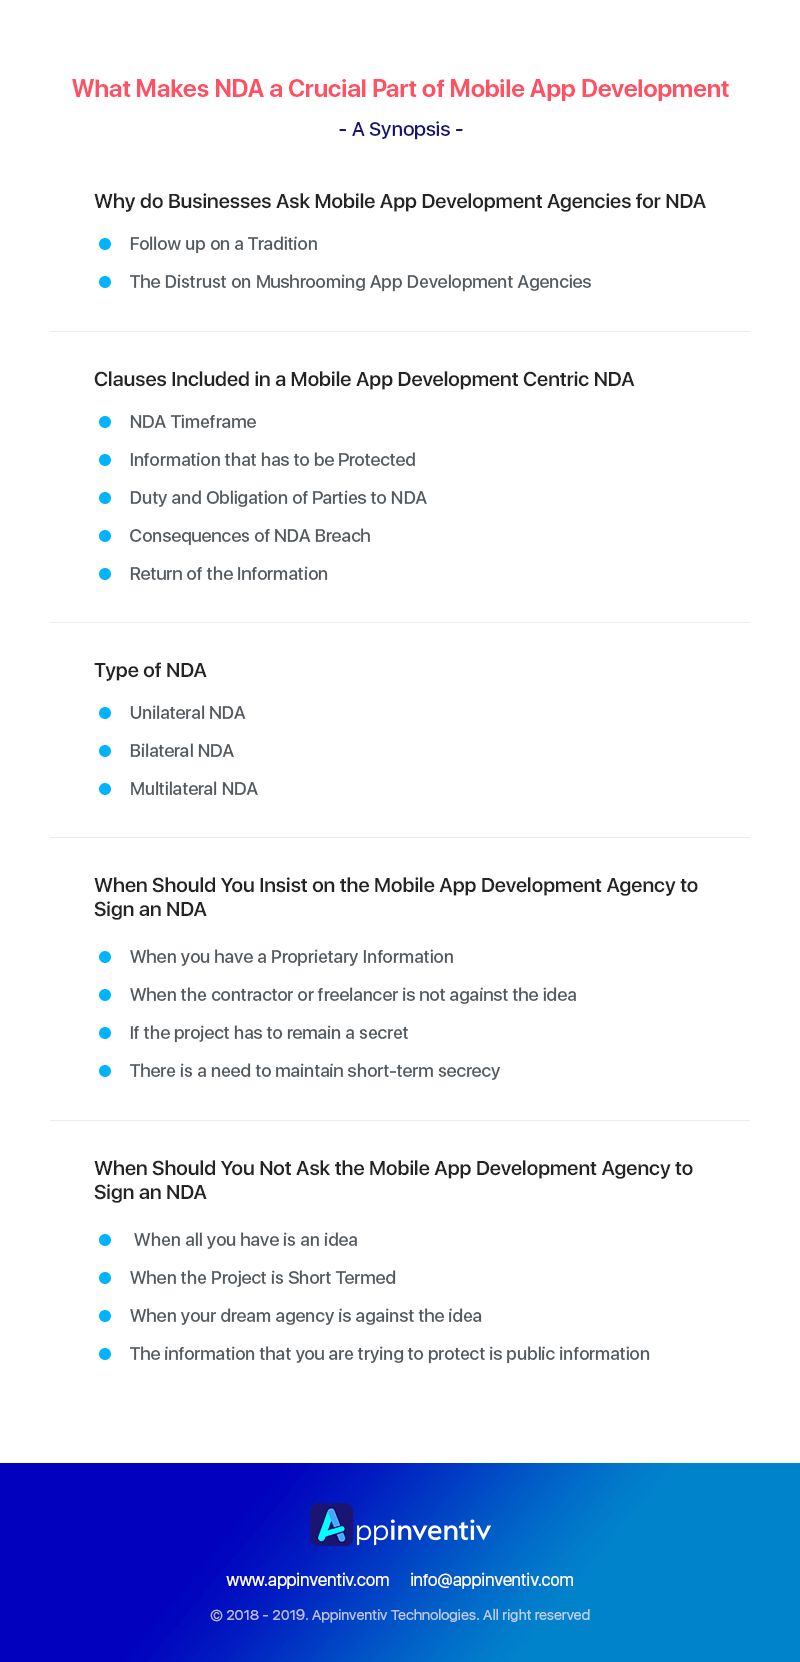 Summary for the Importance of NDA in mobile app development